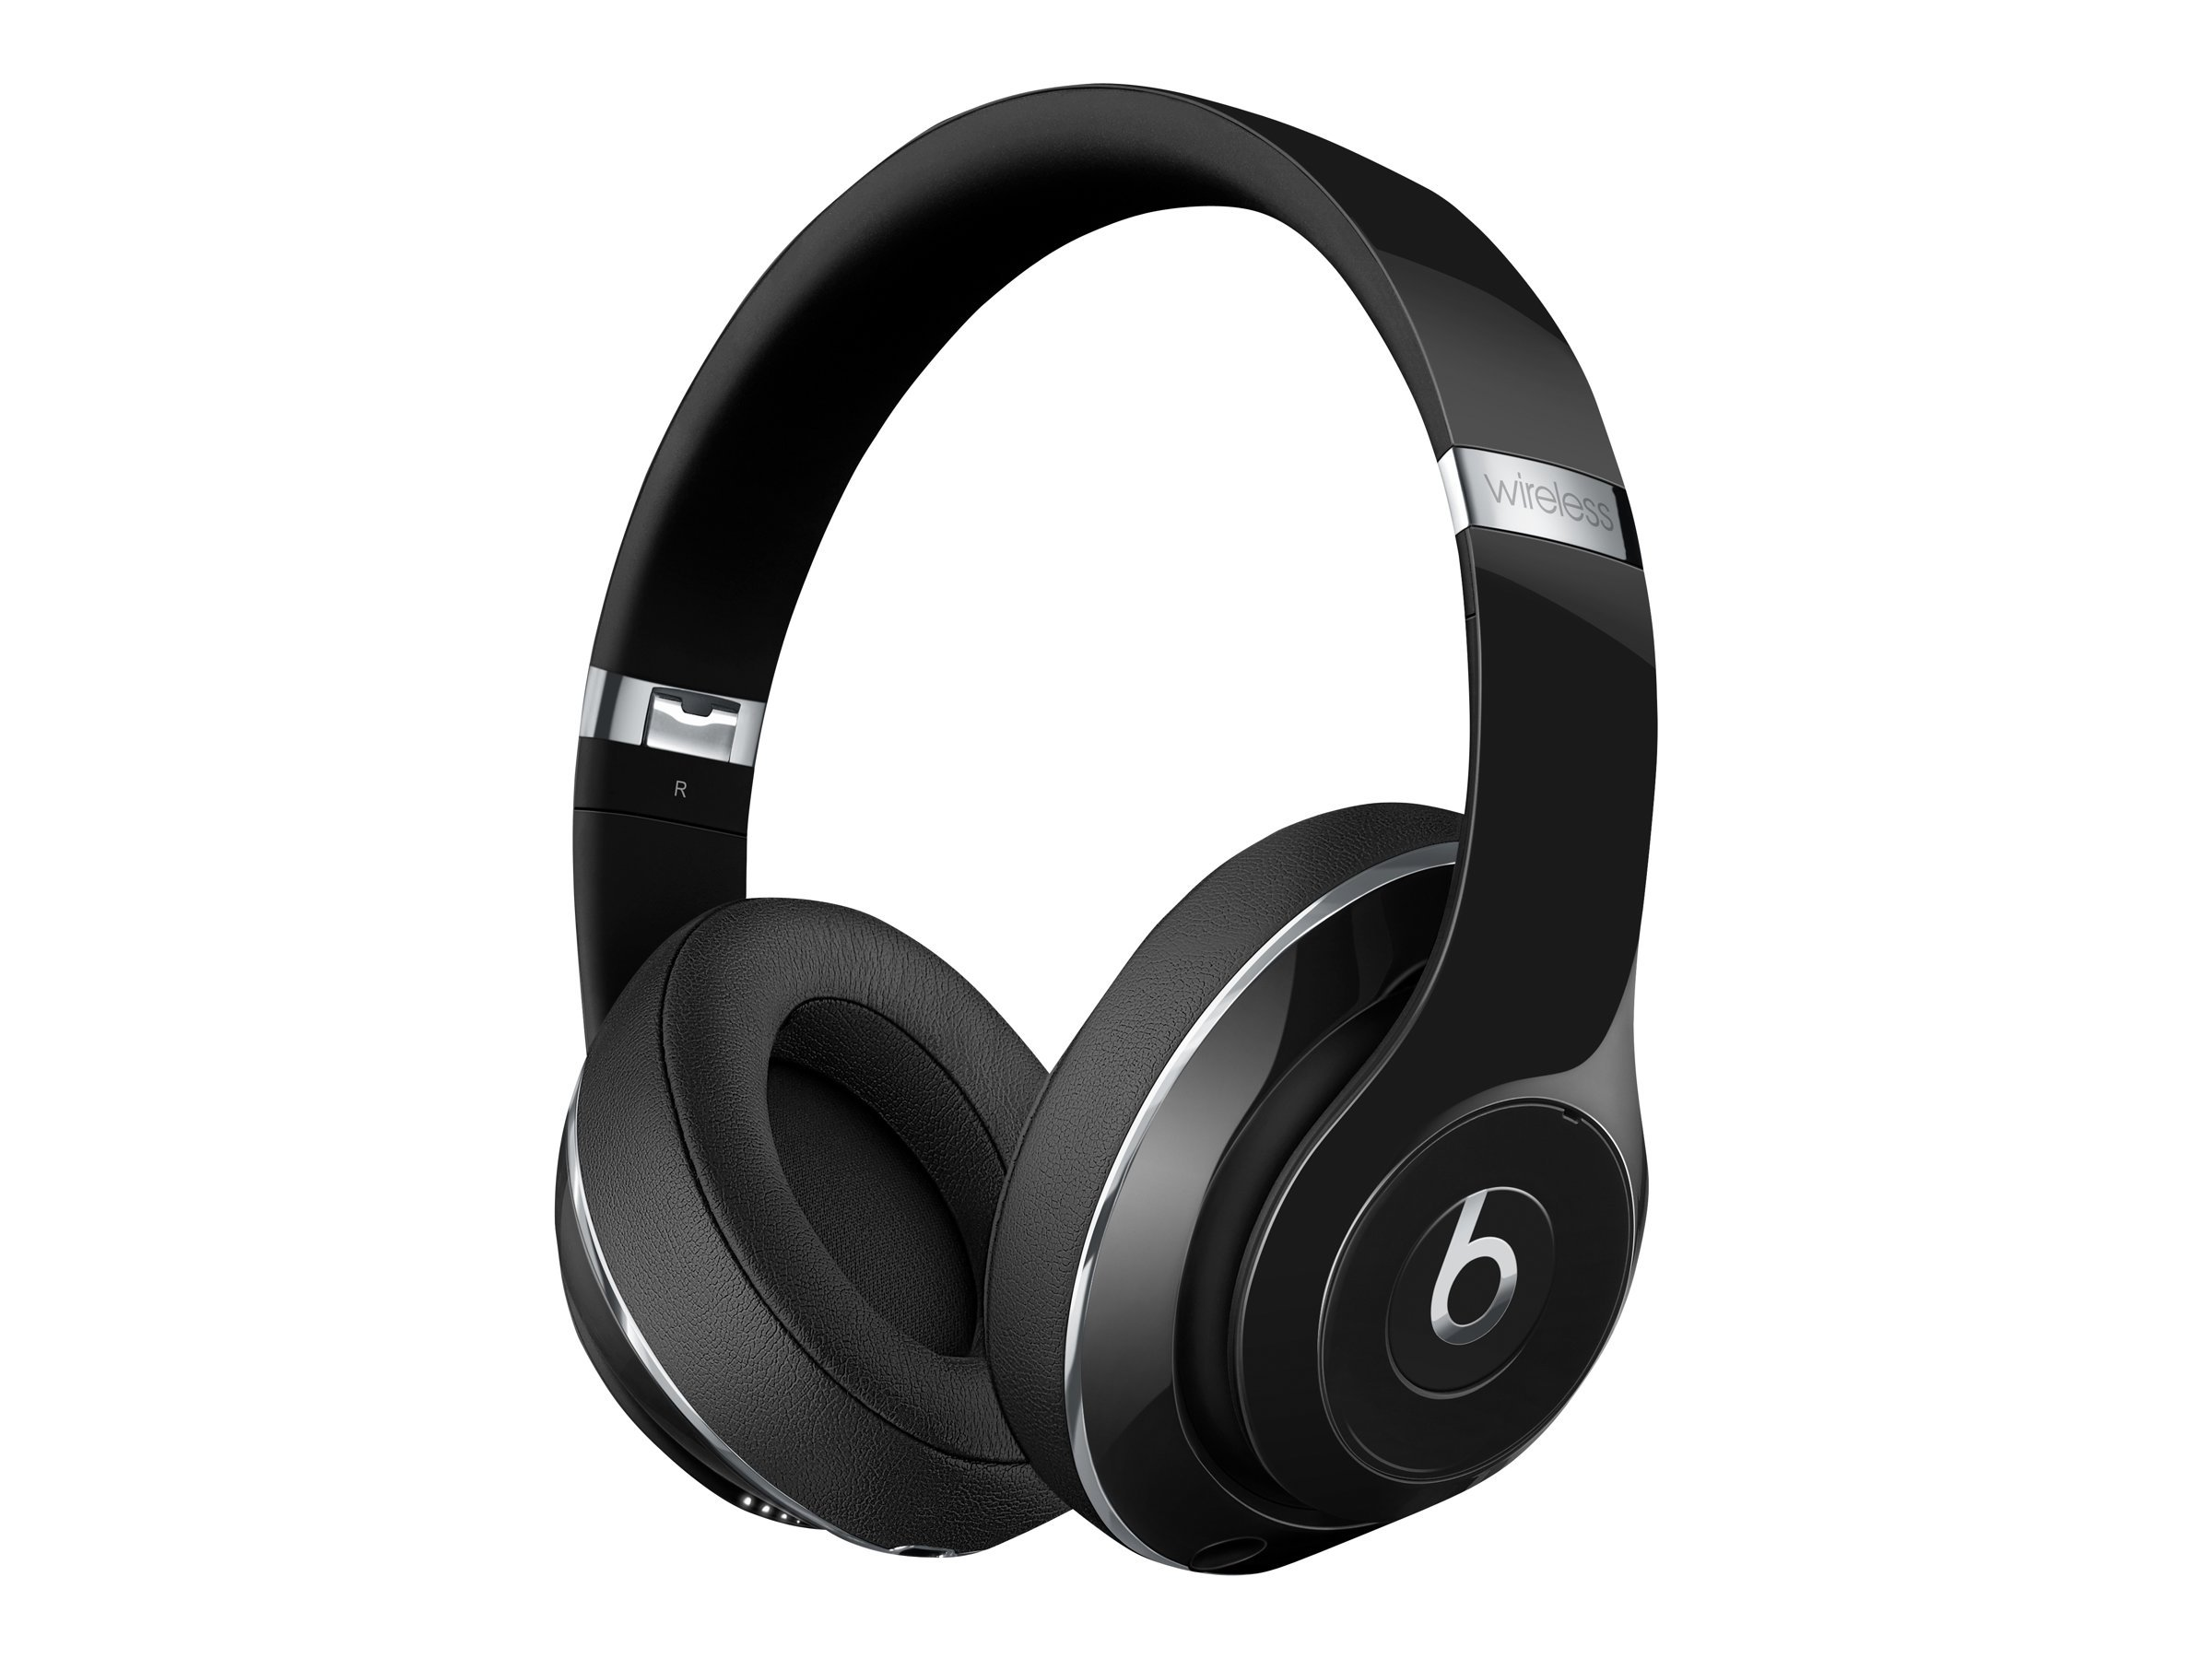 Sennheiser Rs 175 Rf Wireless Headphone System Digital Rs175 Black Beats Studio Over Ear Gloss